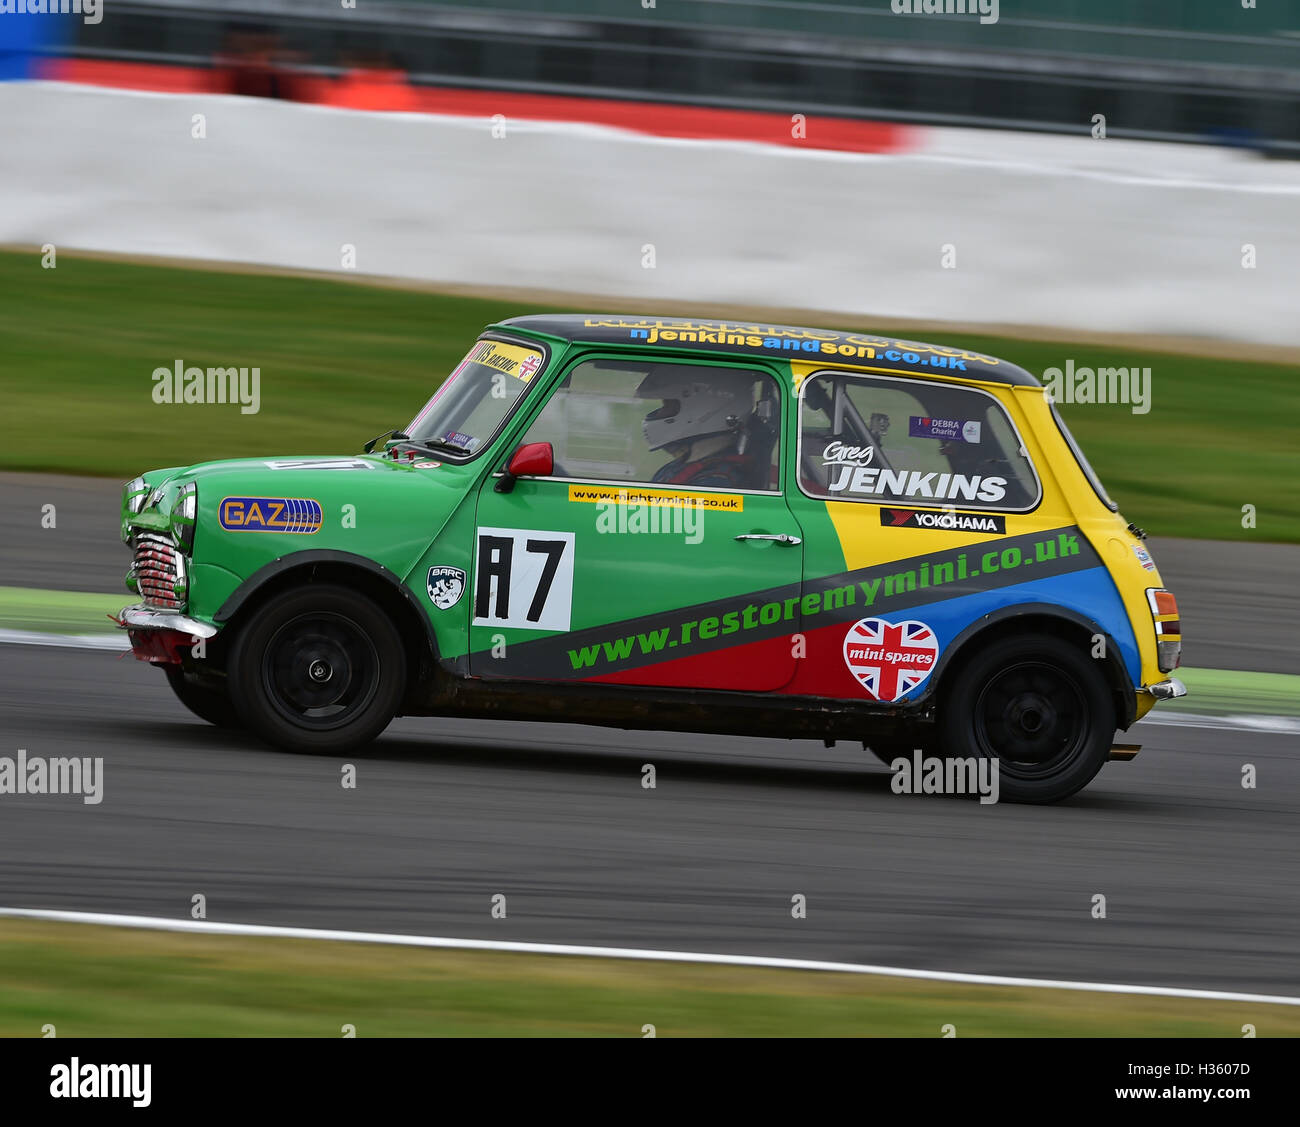 Greg Jenkins, Mighty Mini, 1275, Mighty Mini Championship, Silverstone truck festival, Silverstone, Saturday, August - Stock Image